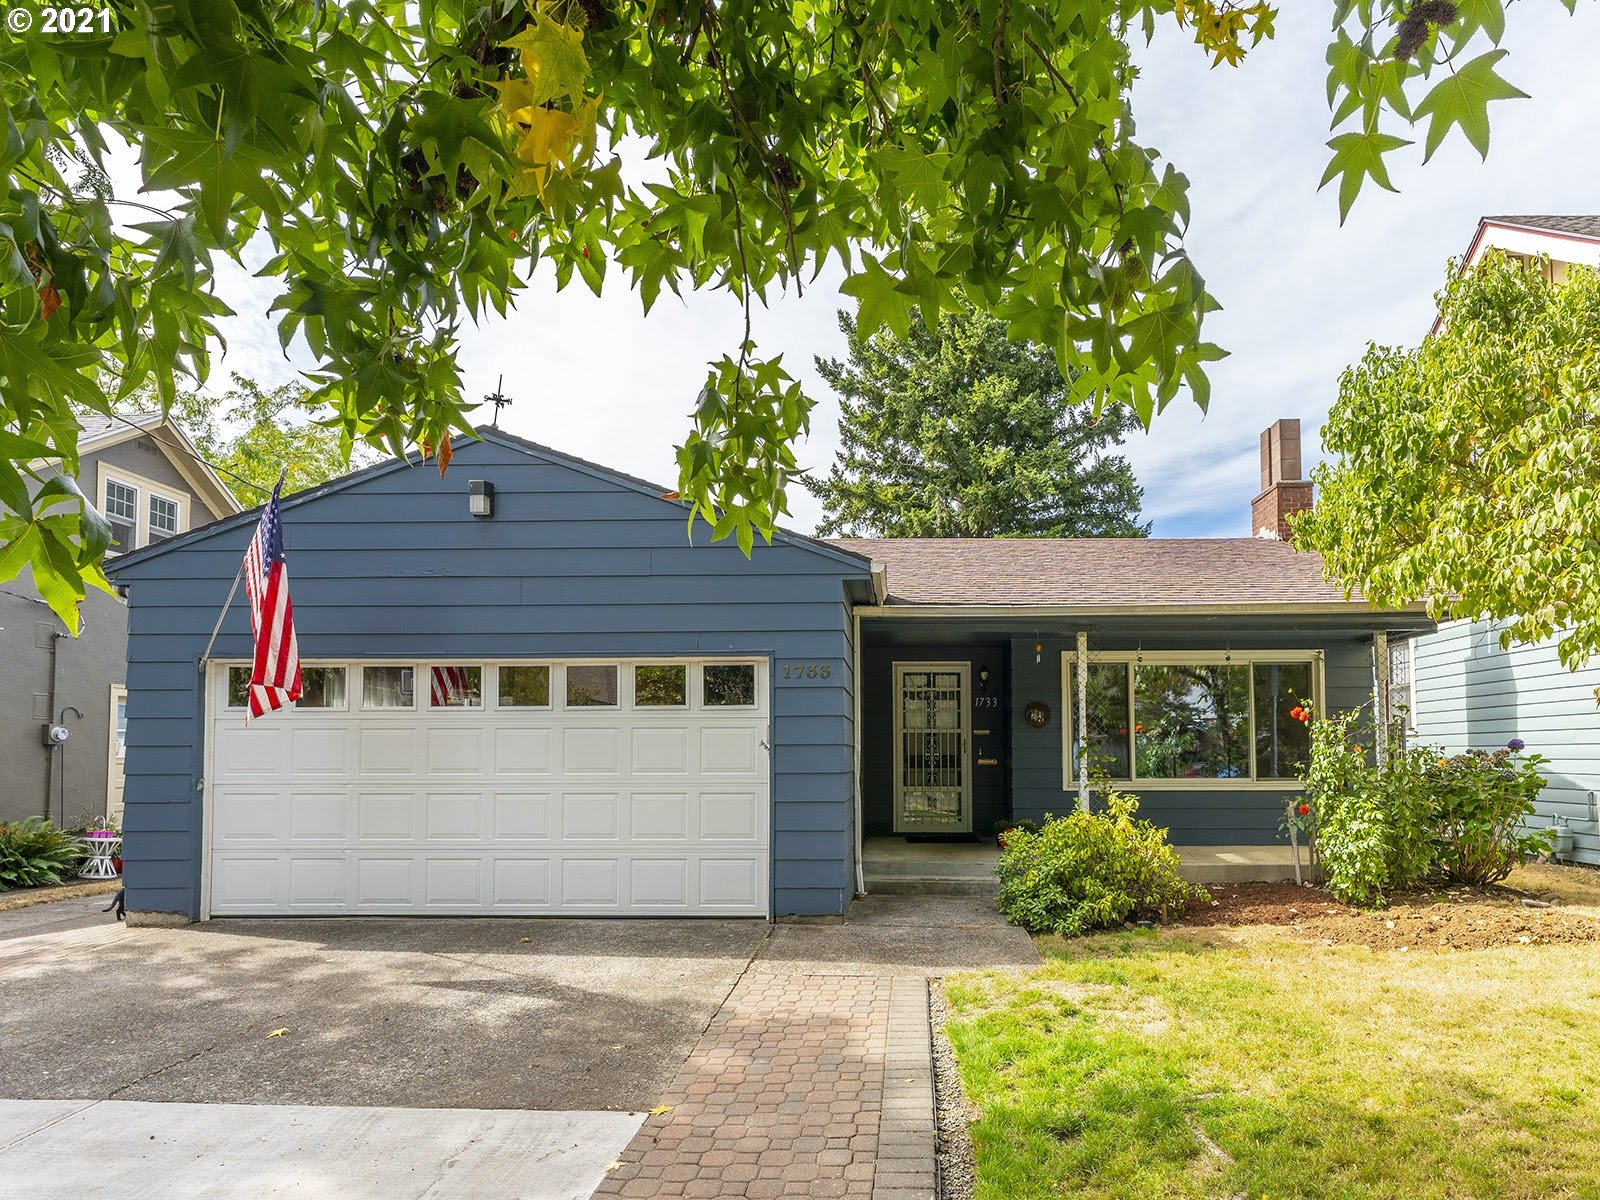 Welcome to this 1966 ranch in the heart of Rose City Park.  This house is deceiving, much larger than it looks. An ample living room with fireplace, and beautiful hardwood floors.  The kitchen has tons of storage and a generous dining area to gather round. Five bedrooms! Enough space for a home office and more. Enjoy the family room with fireplace perfect for game night. Three California closets, plus new furnace. All this by stores, parks, farmers market & cafes. Bike score 99. Walk score 79 [Home Energy Score = 4. HES Report at https://rpt.greenbuildingregistry.com/hes/OR10194339]